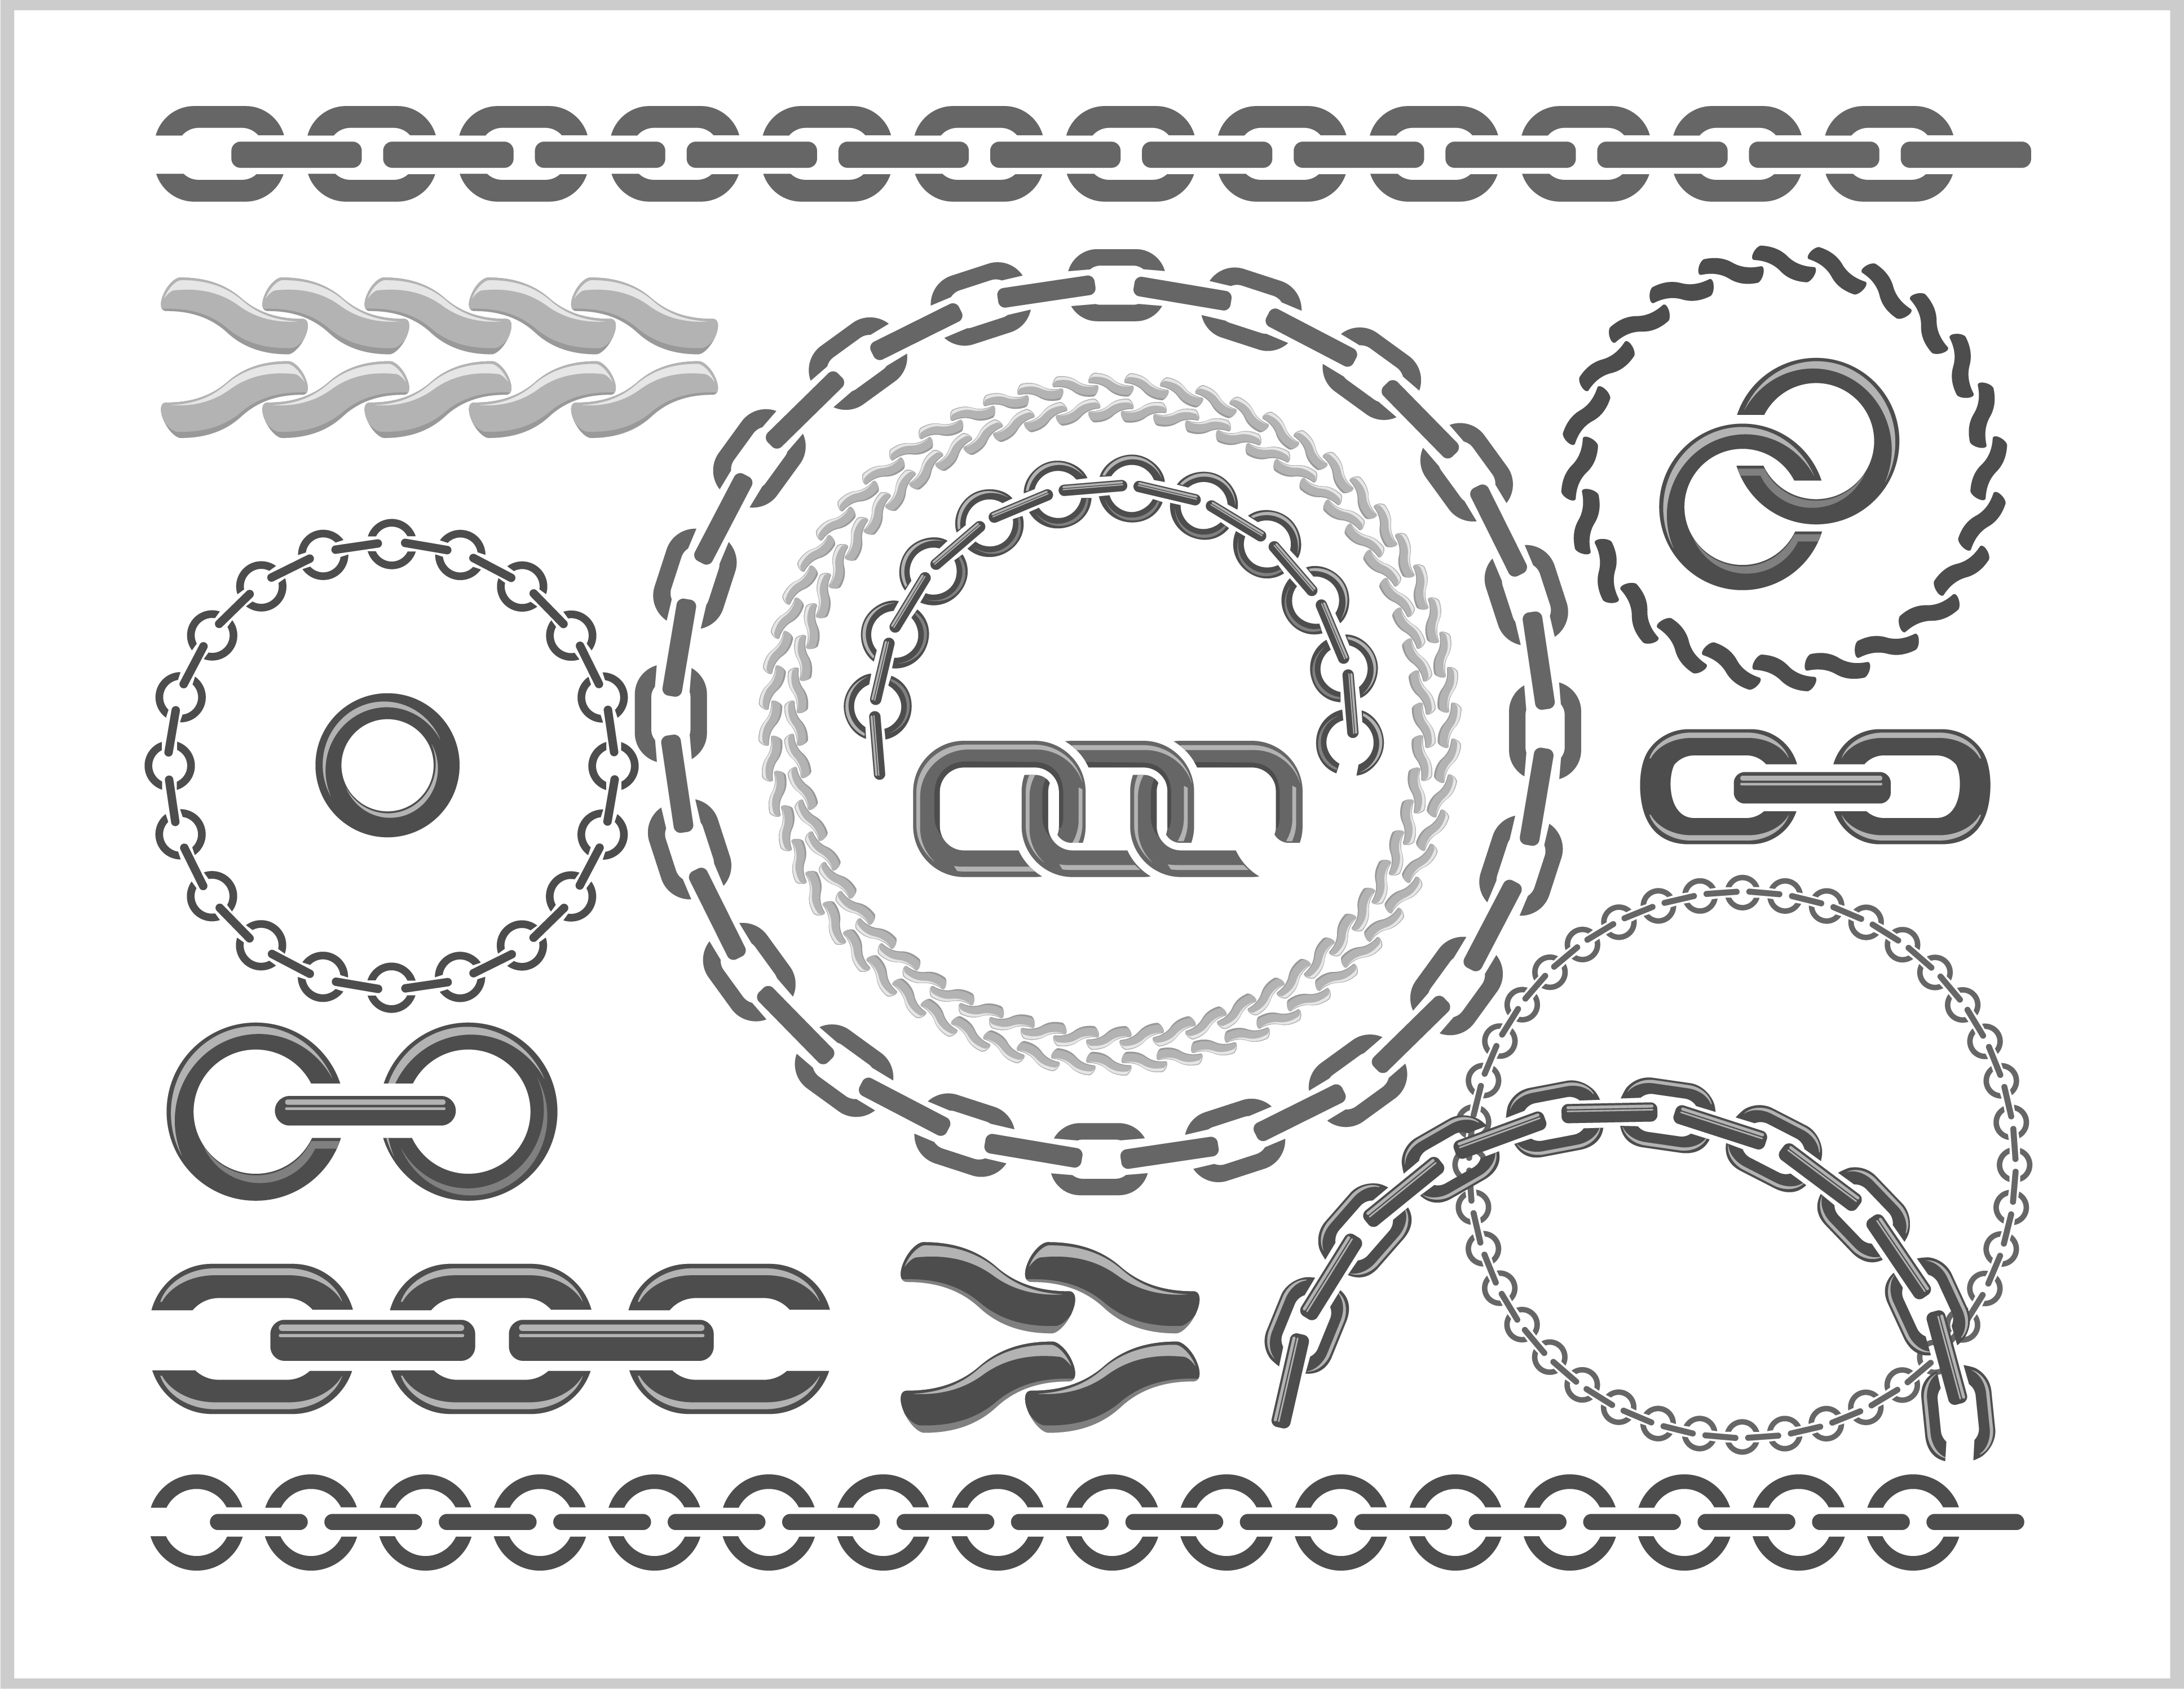 Metal chains vector design 02 free download